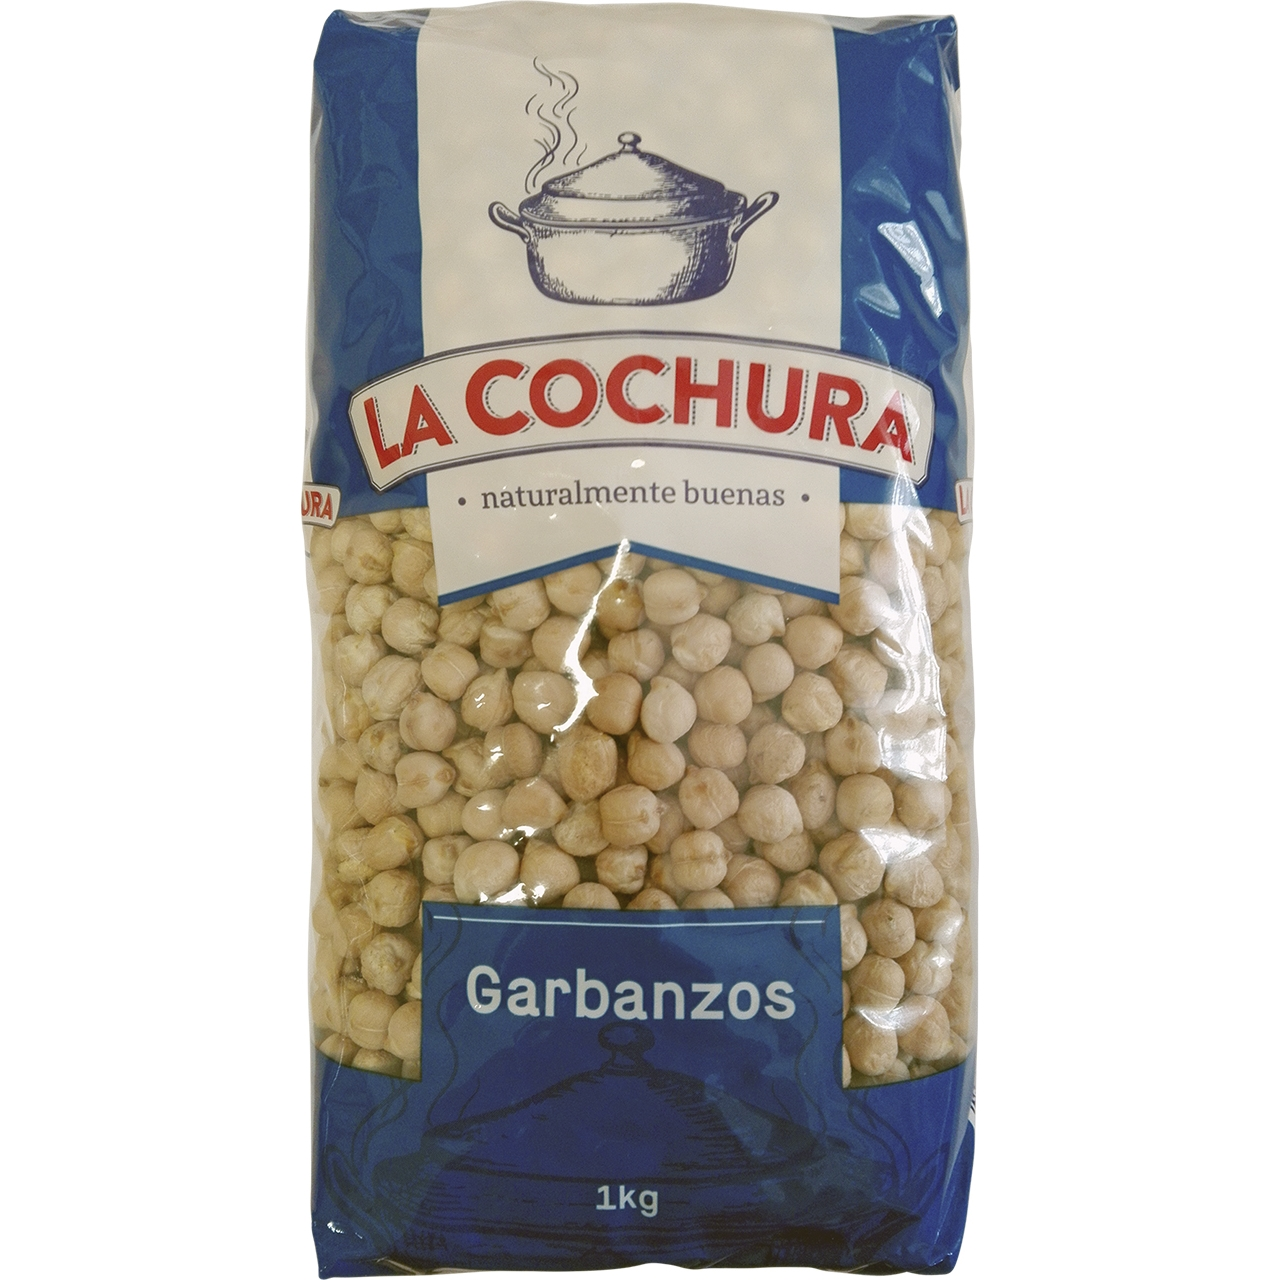 Garbanzo Castellano 58/60 9mm 1kg La Cochura